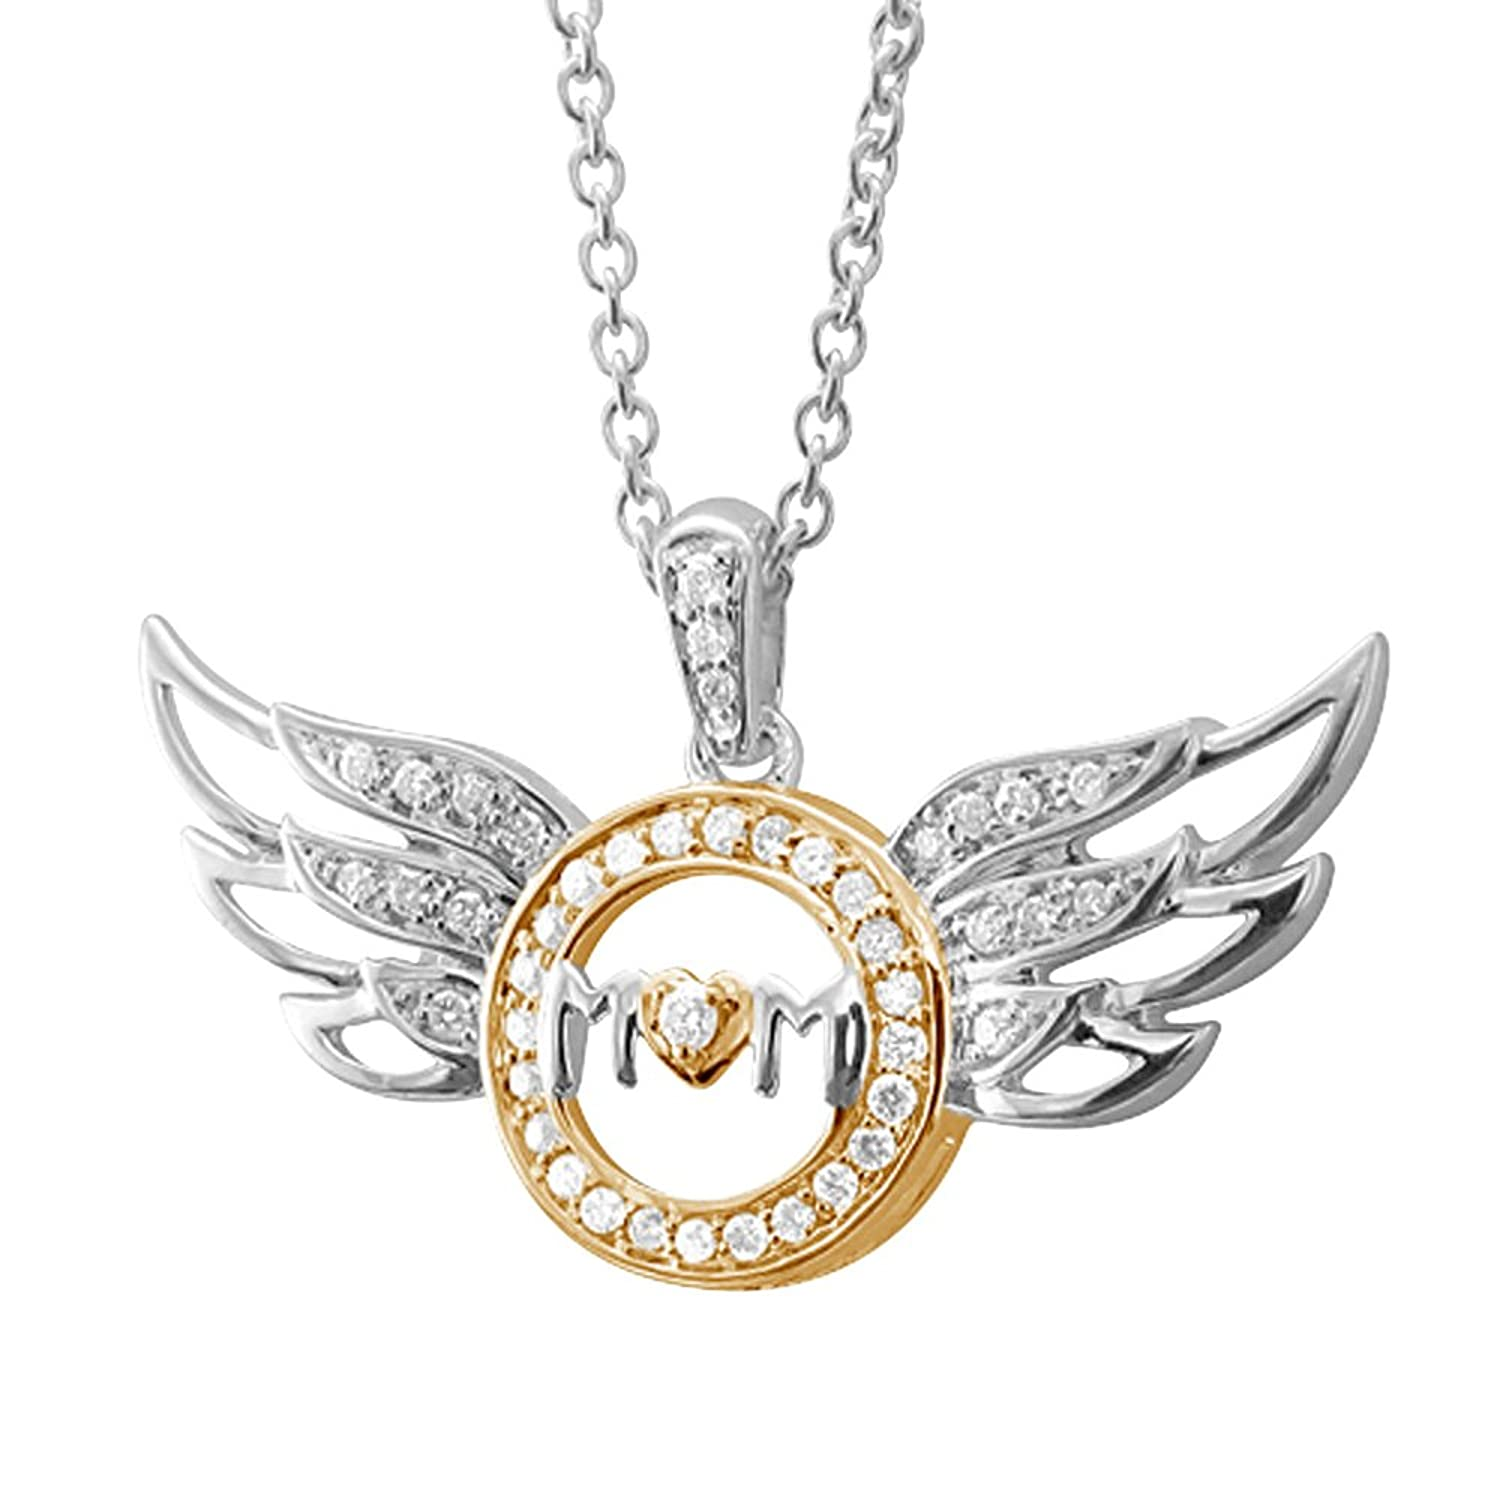 Sterling Silver Heart Love Angel Wing Mothers Day Diamond Pendant Necklace (1/4 carat)